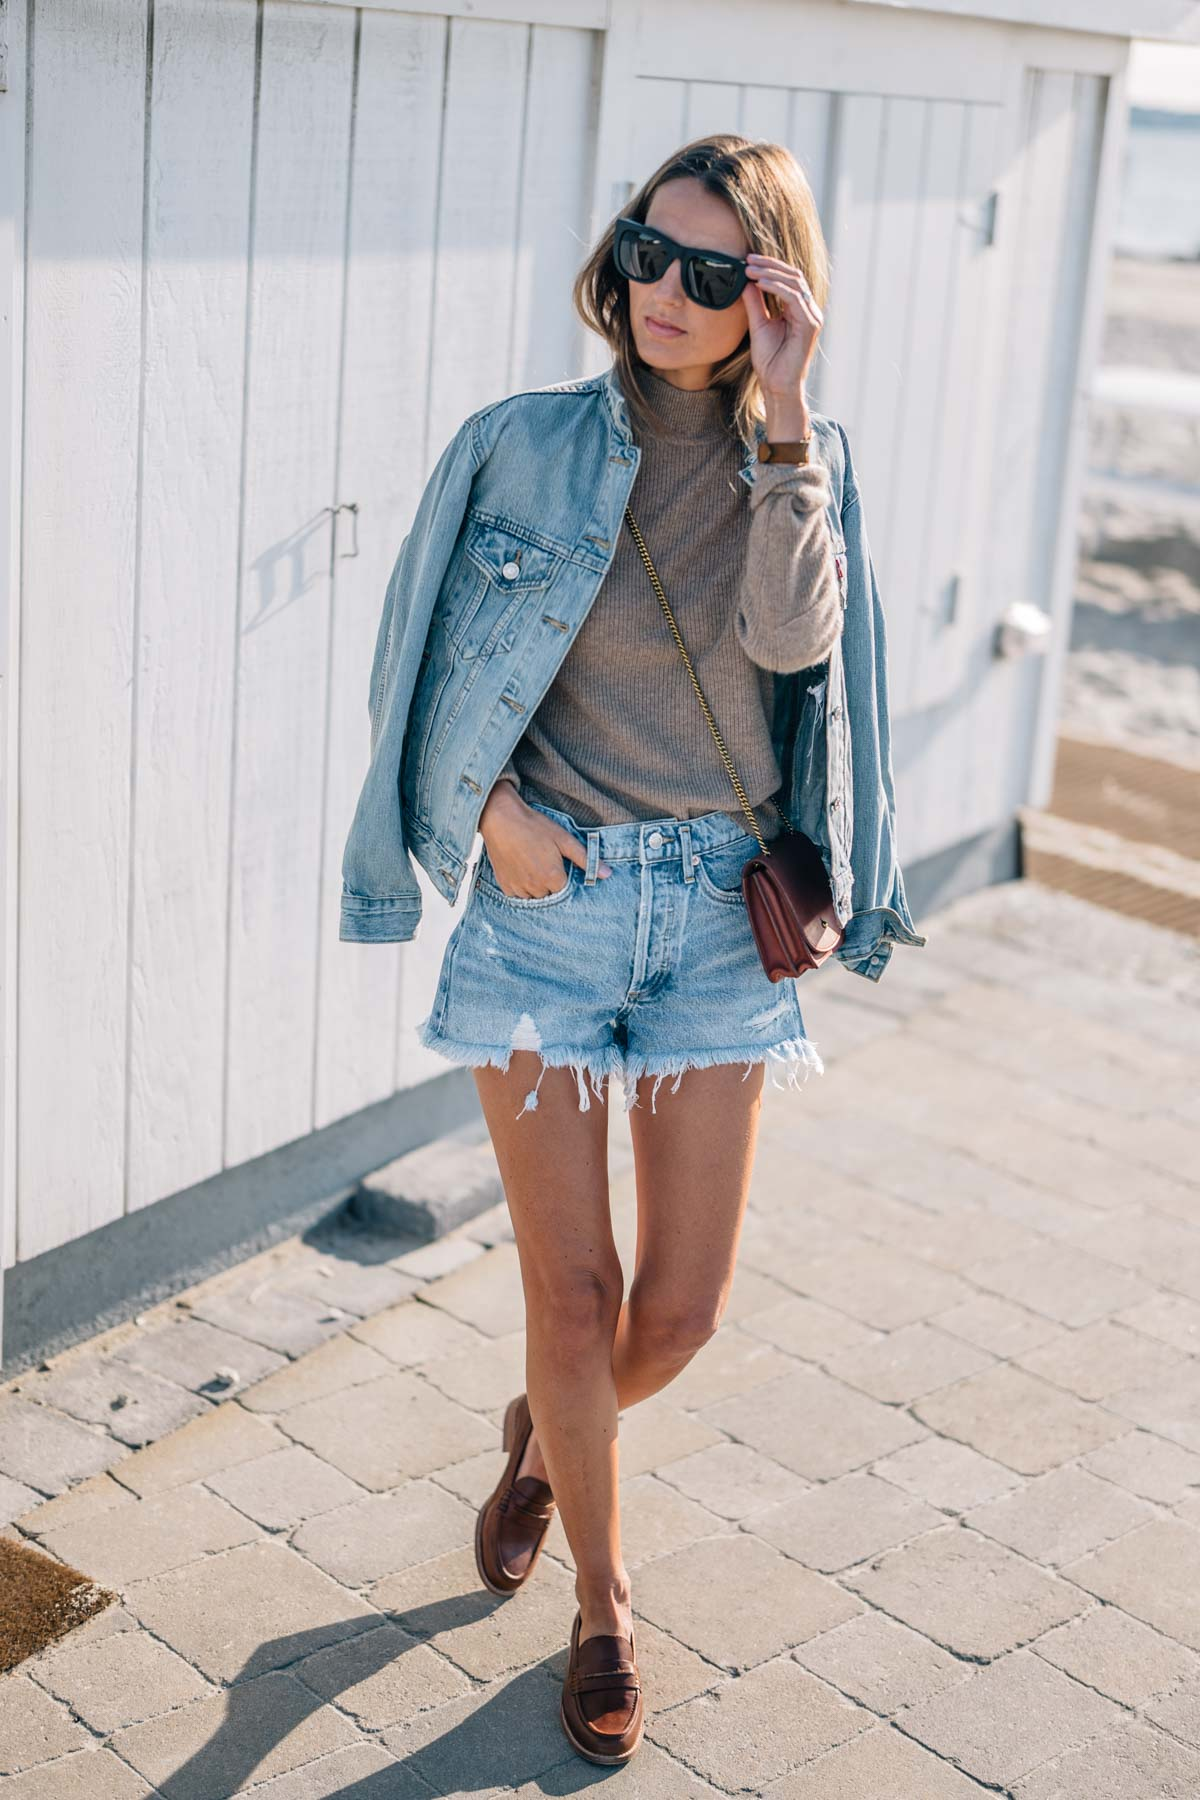 Jess Kirby wears super gals sunglasses, agolde parker vintage denim shorts and a cashmere sweater with madewell loafers